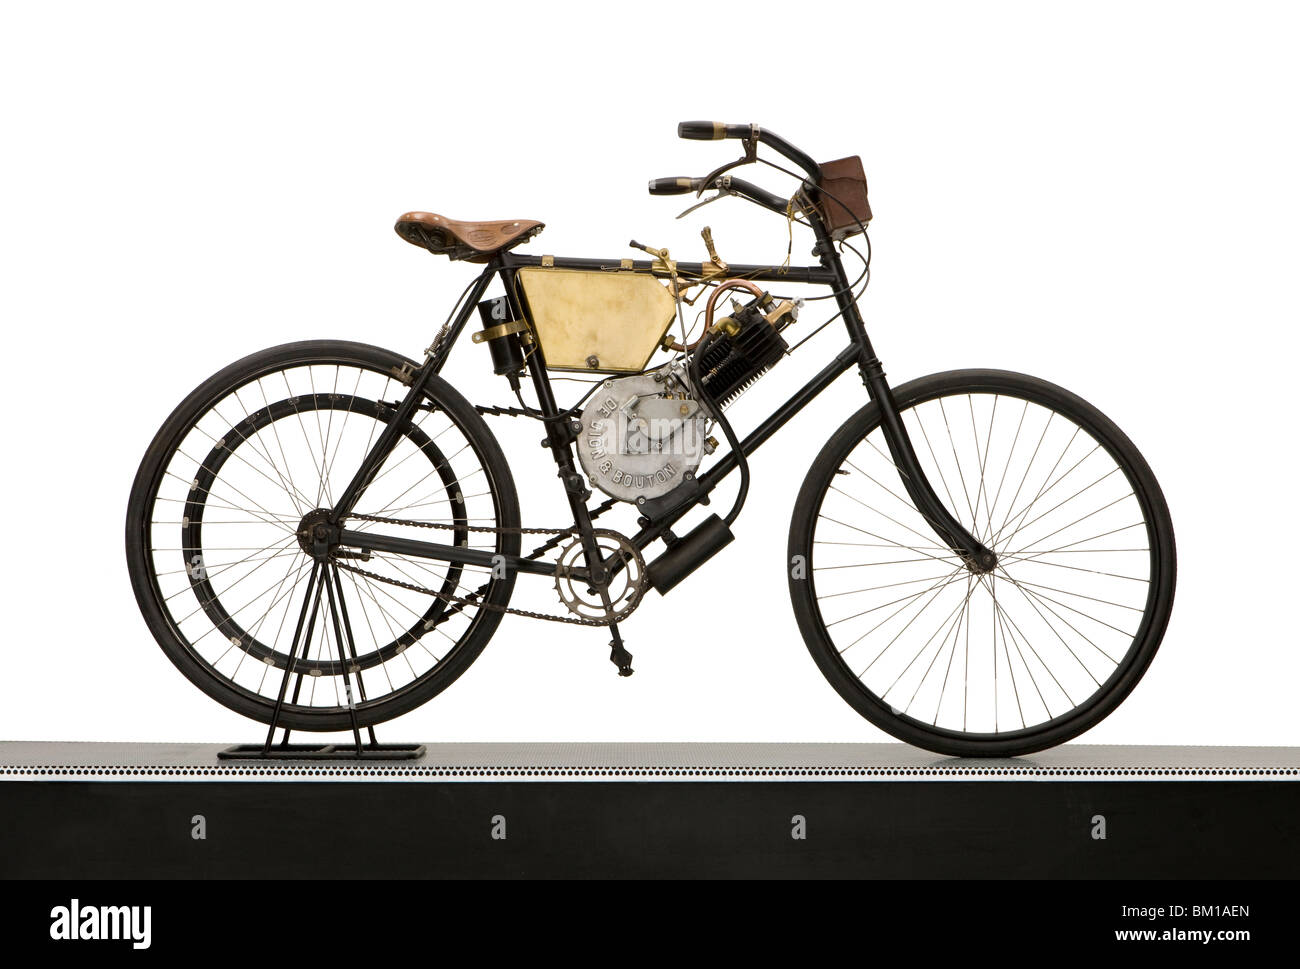 1900 De Dion Bouton-engined motorcycle - Stock Image